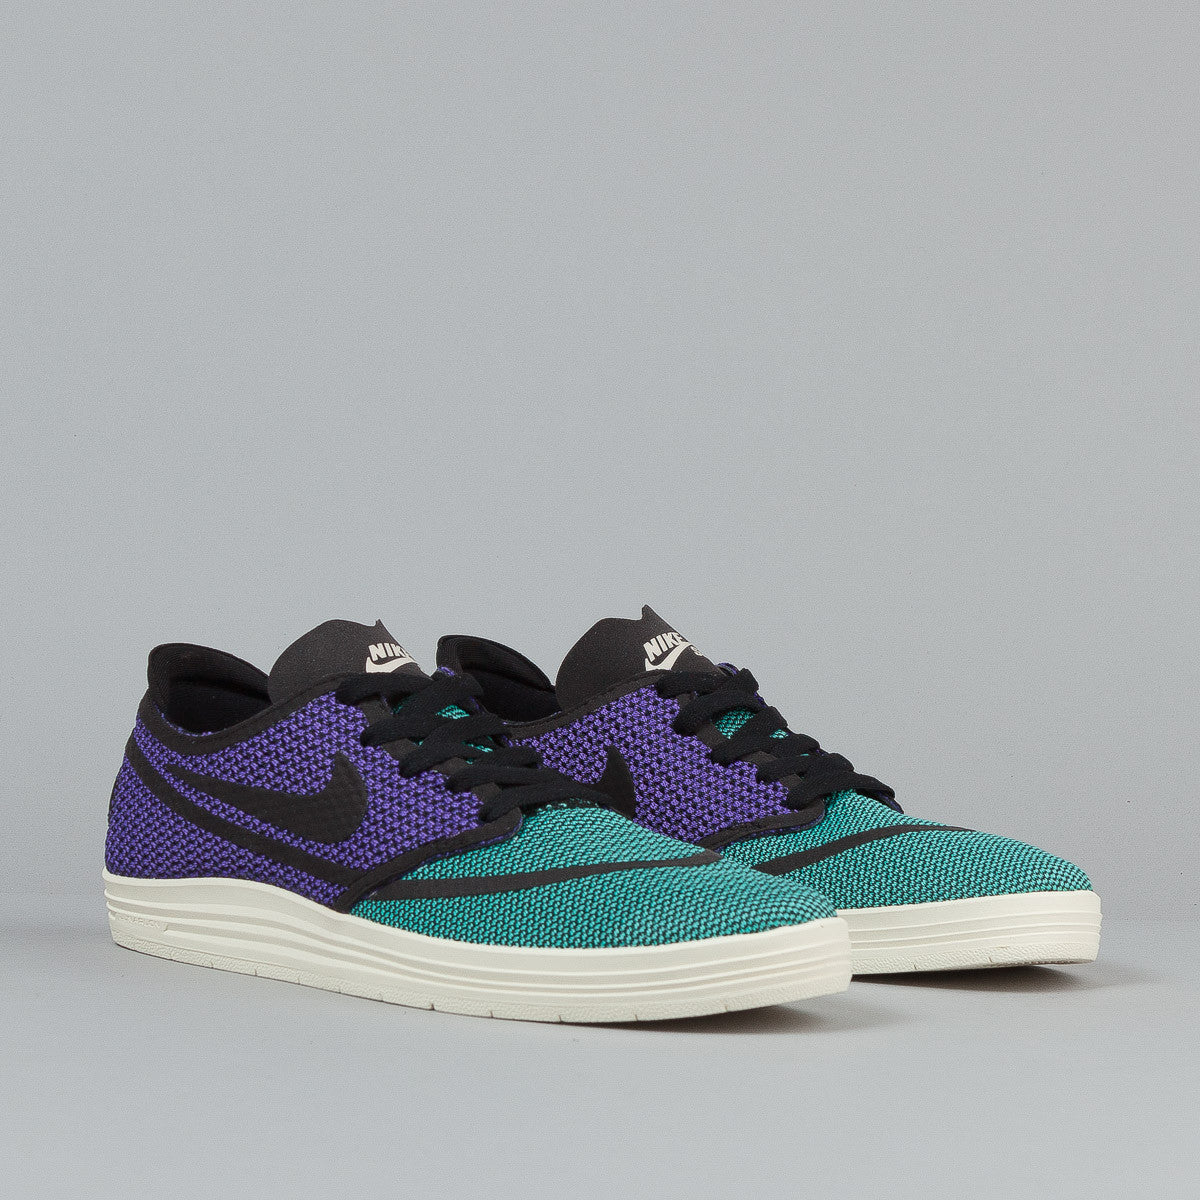 Nike SB Lunar Oneshot R/R Crystal Mint / Black - Hyper Grape